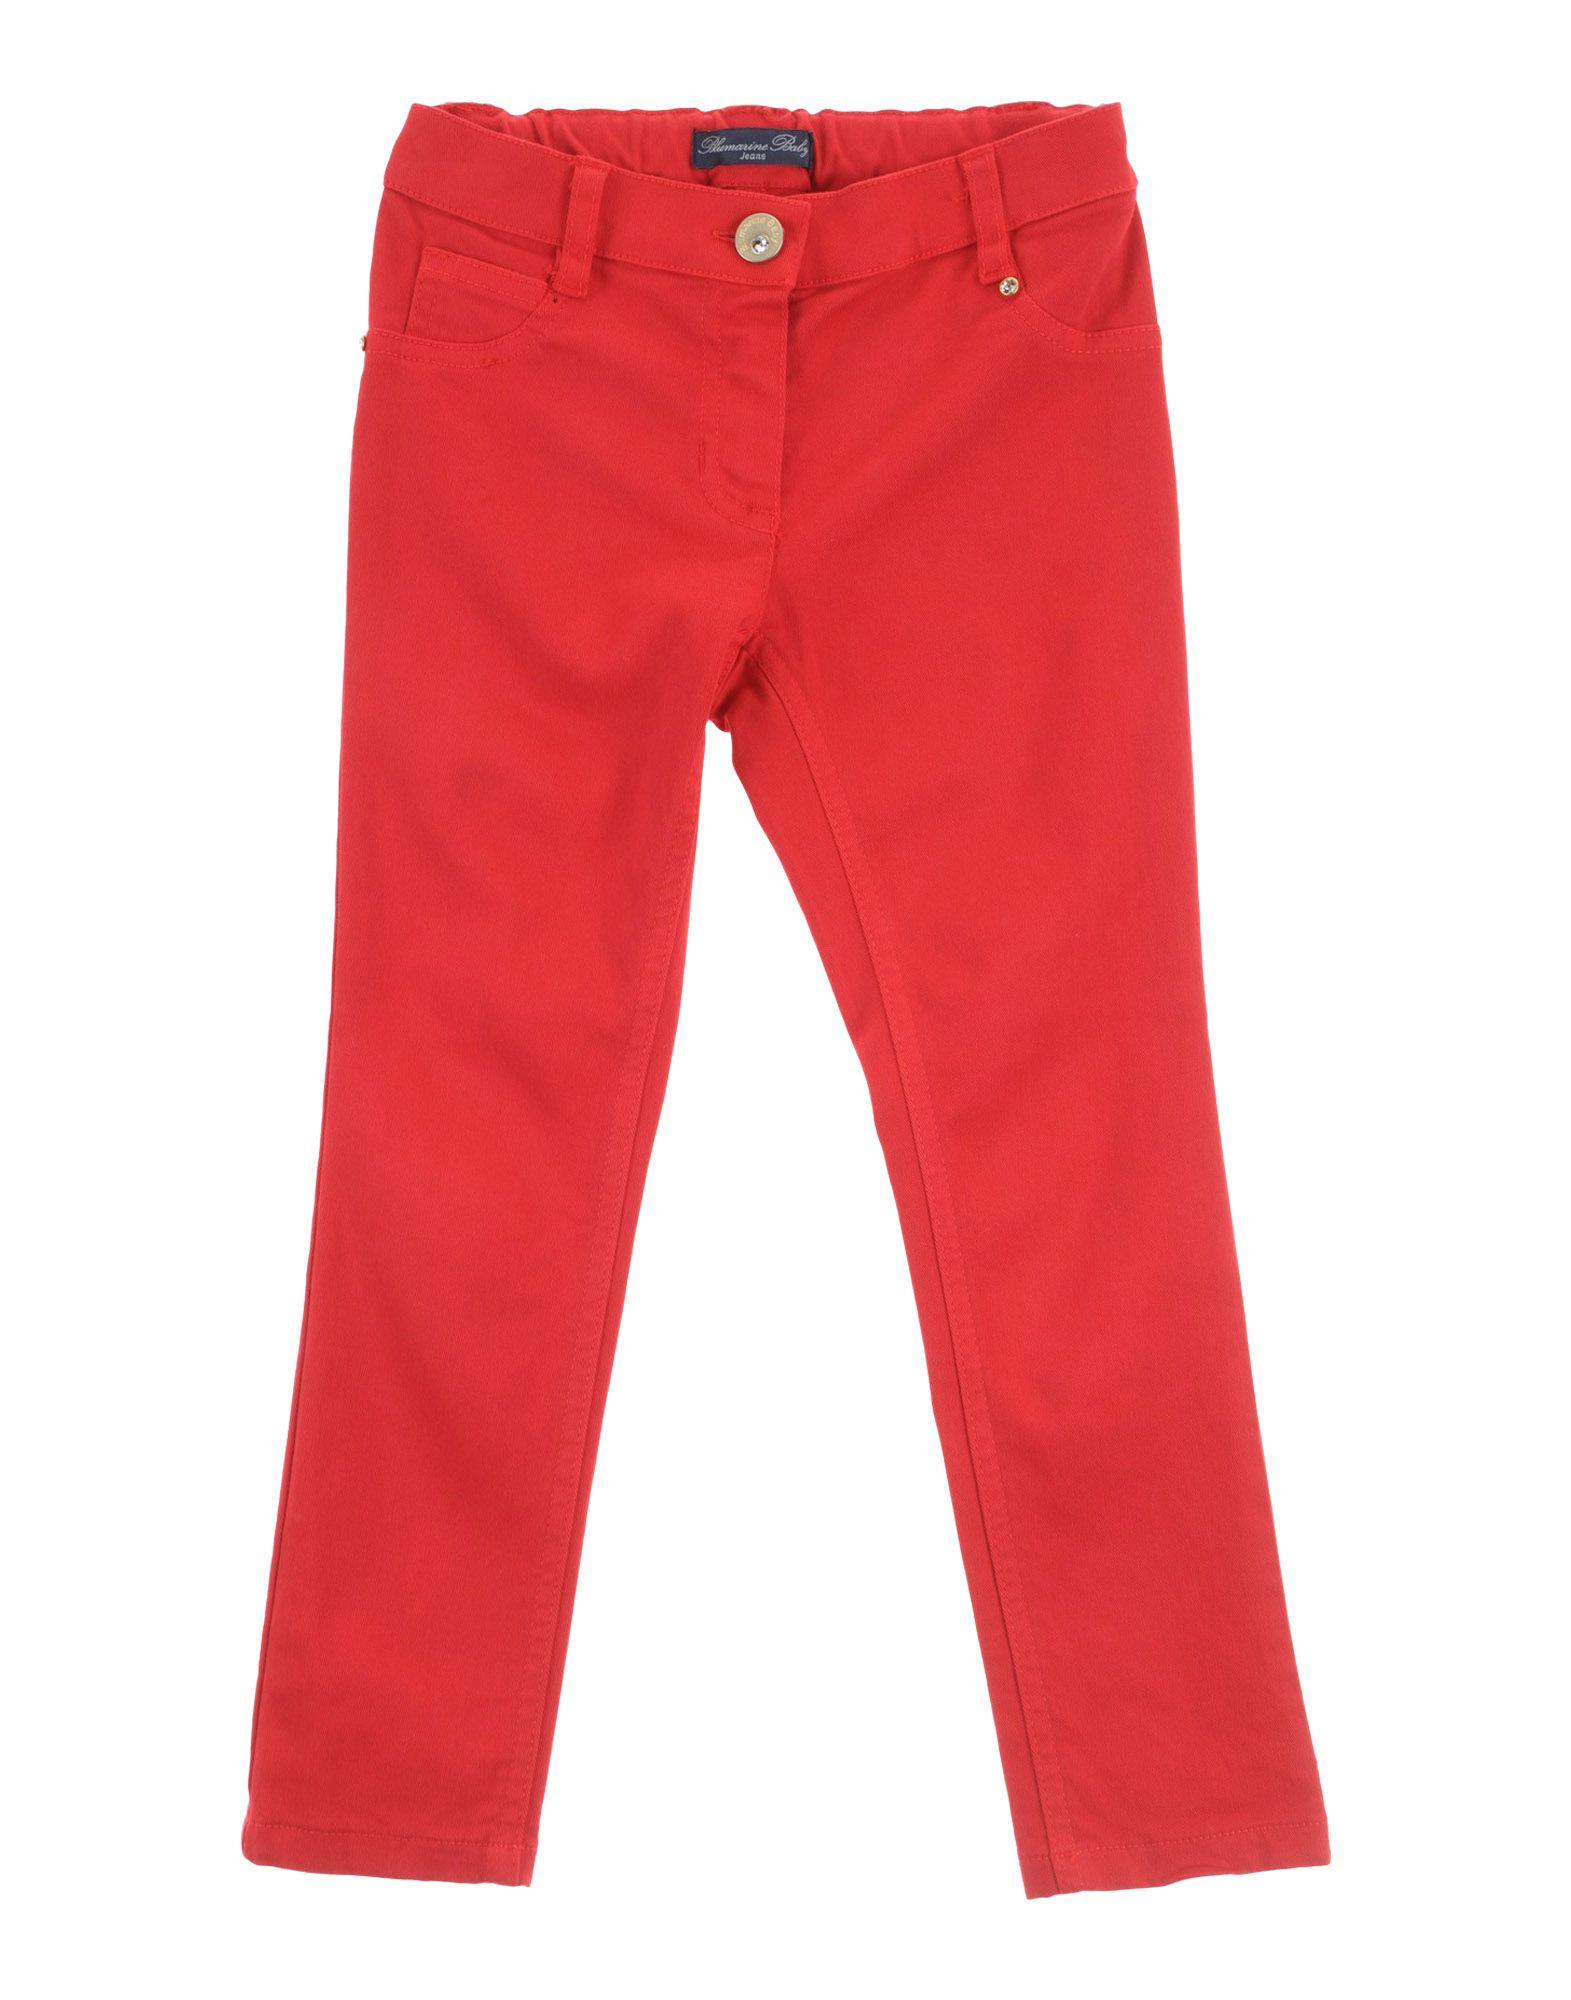 MISS BLUMARINE JEANS Casual pants